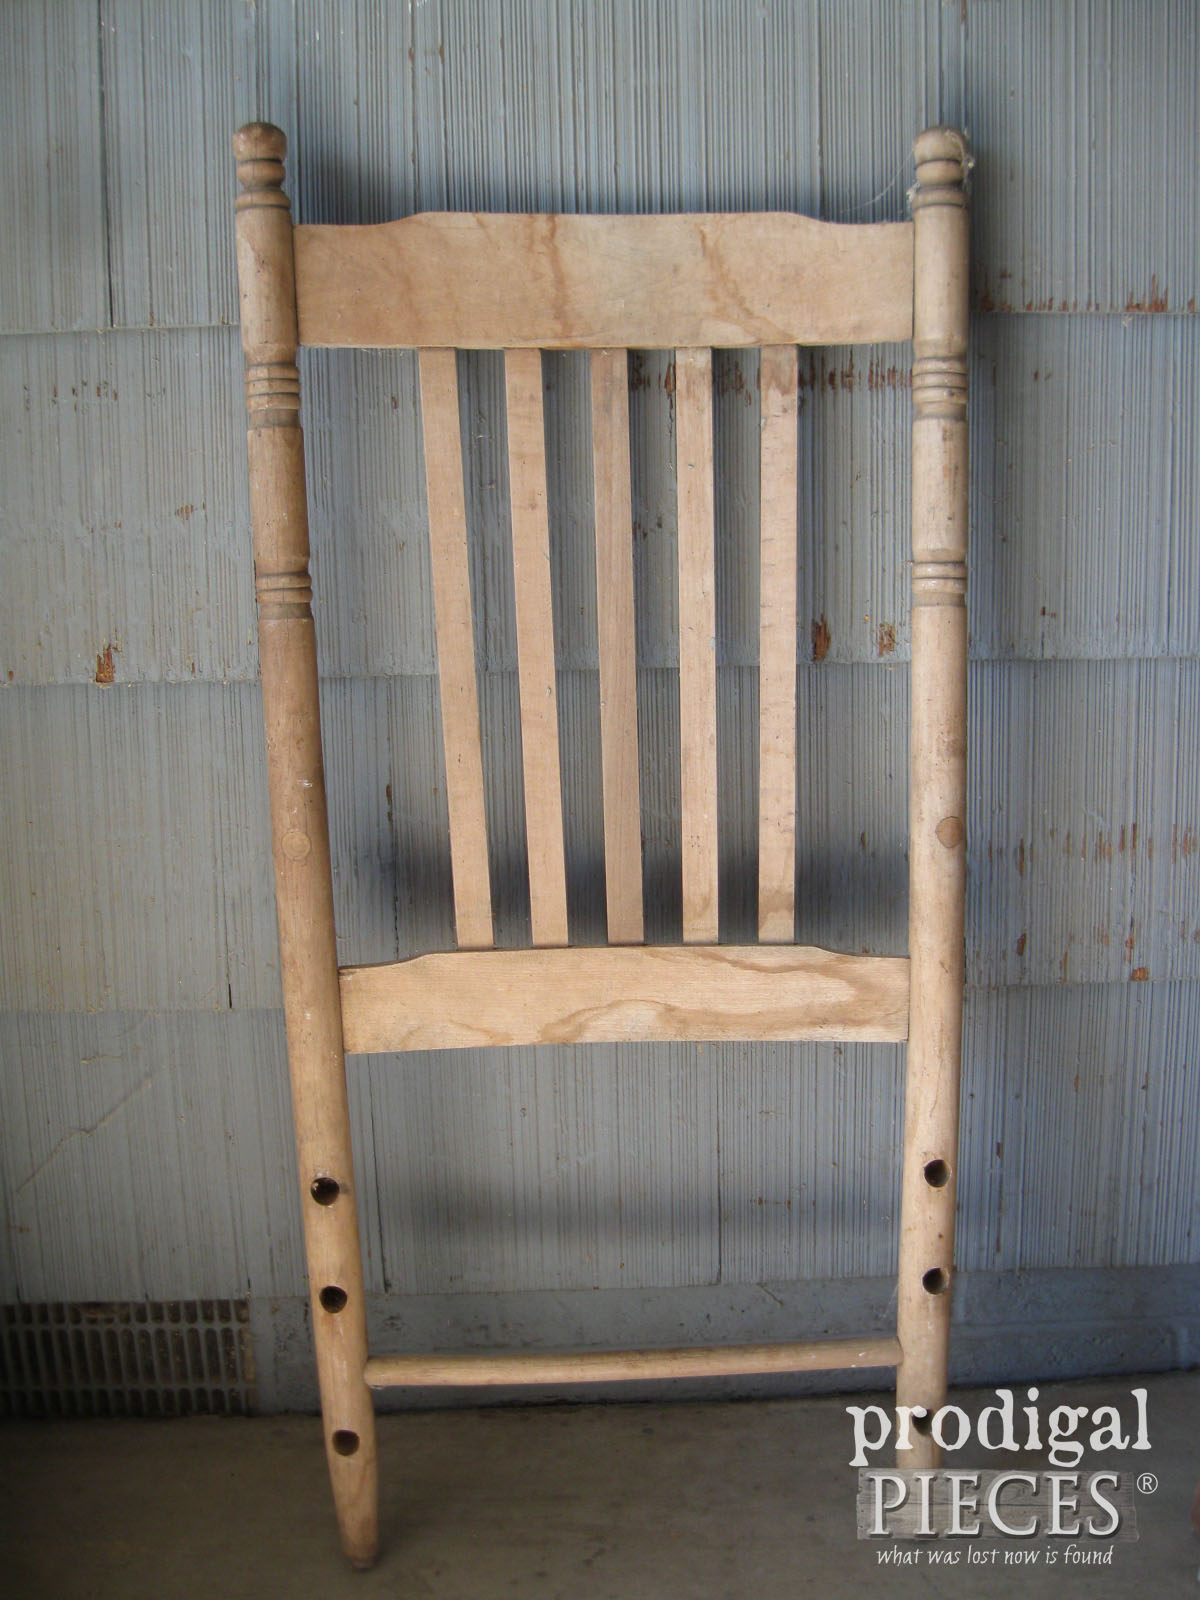 Broken Chair Before Repurposed Shelf | Prodigal Pieces | www.prodigalpieces.com